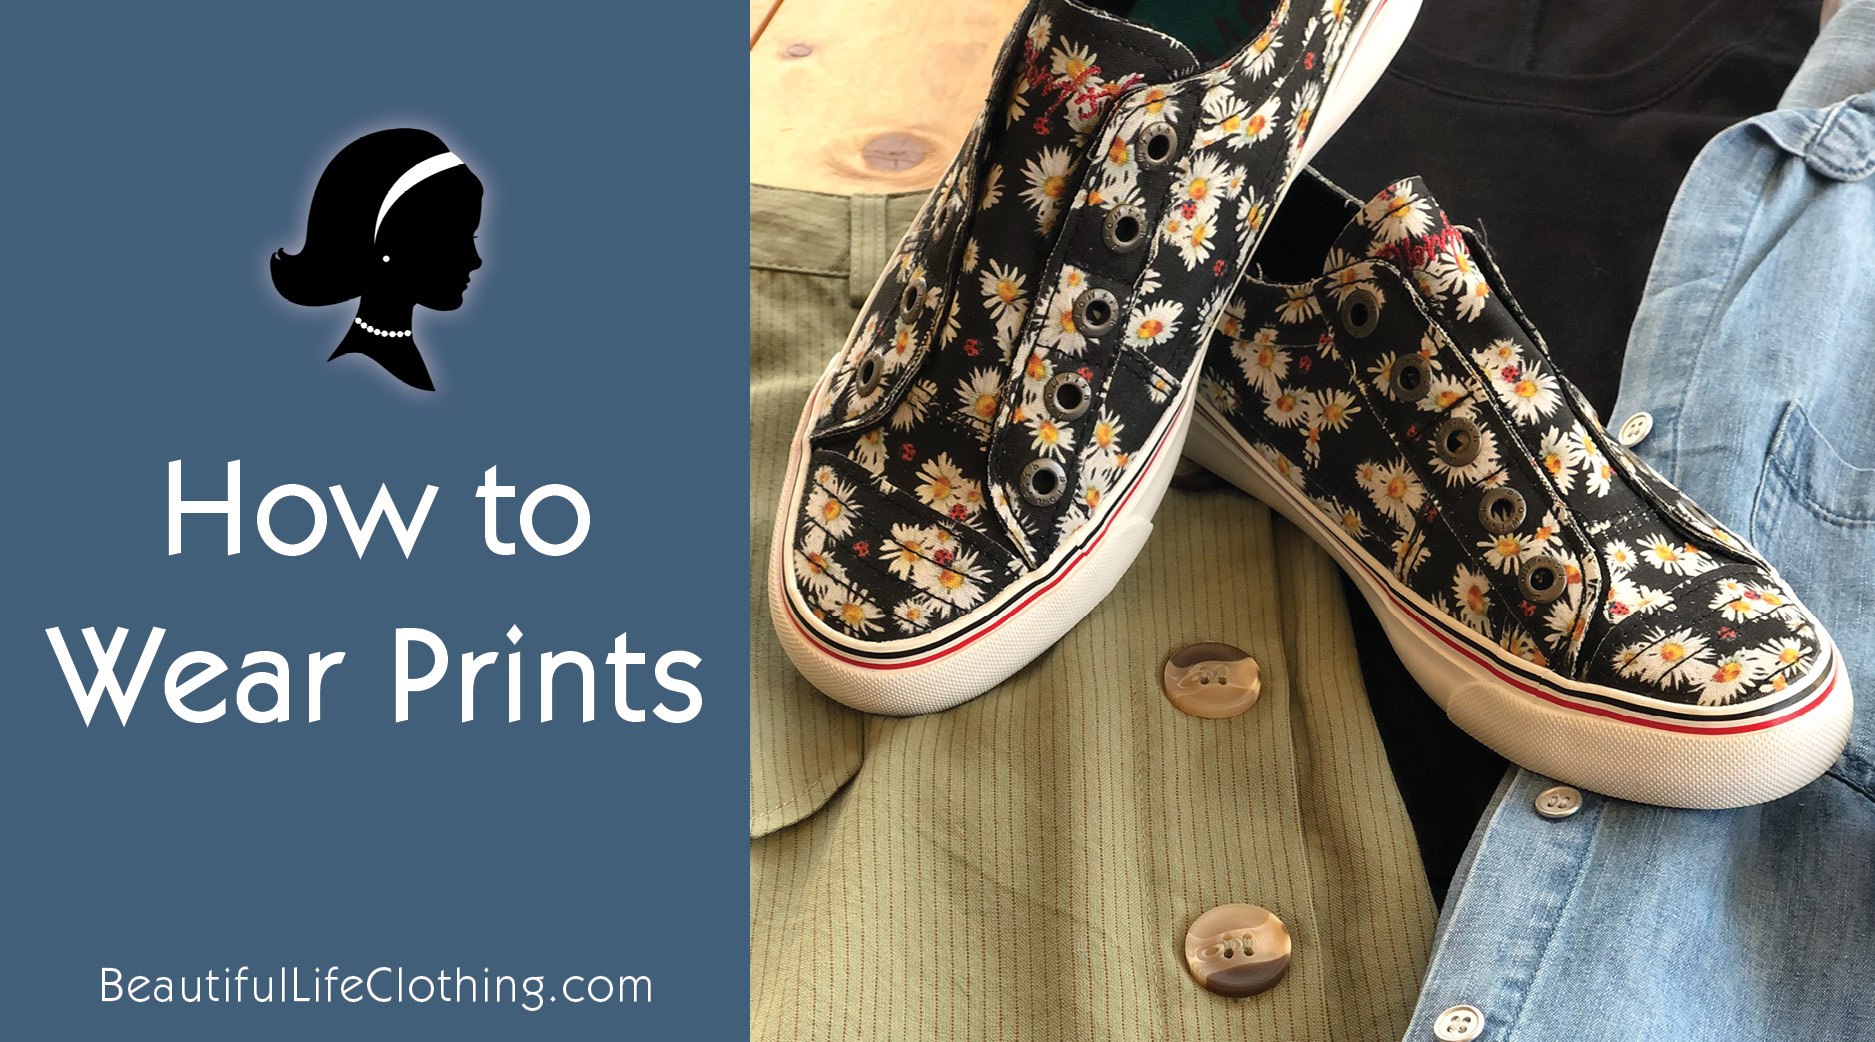 Style Tip #4 - How to Wear Prints